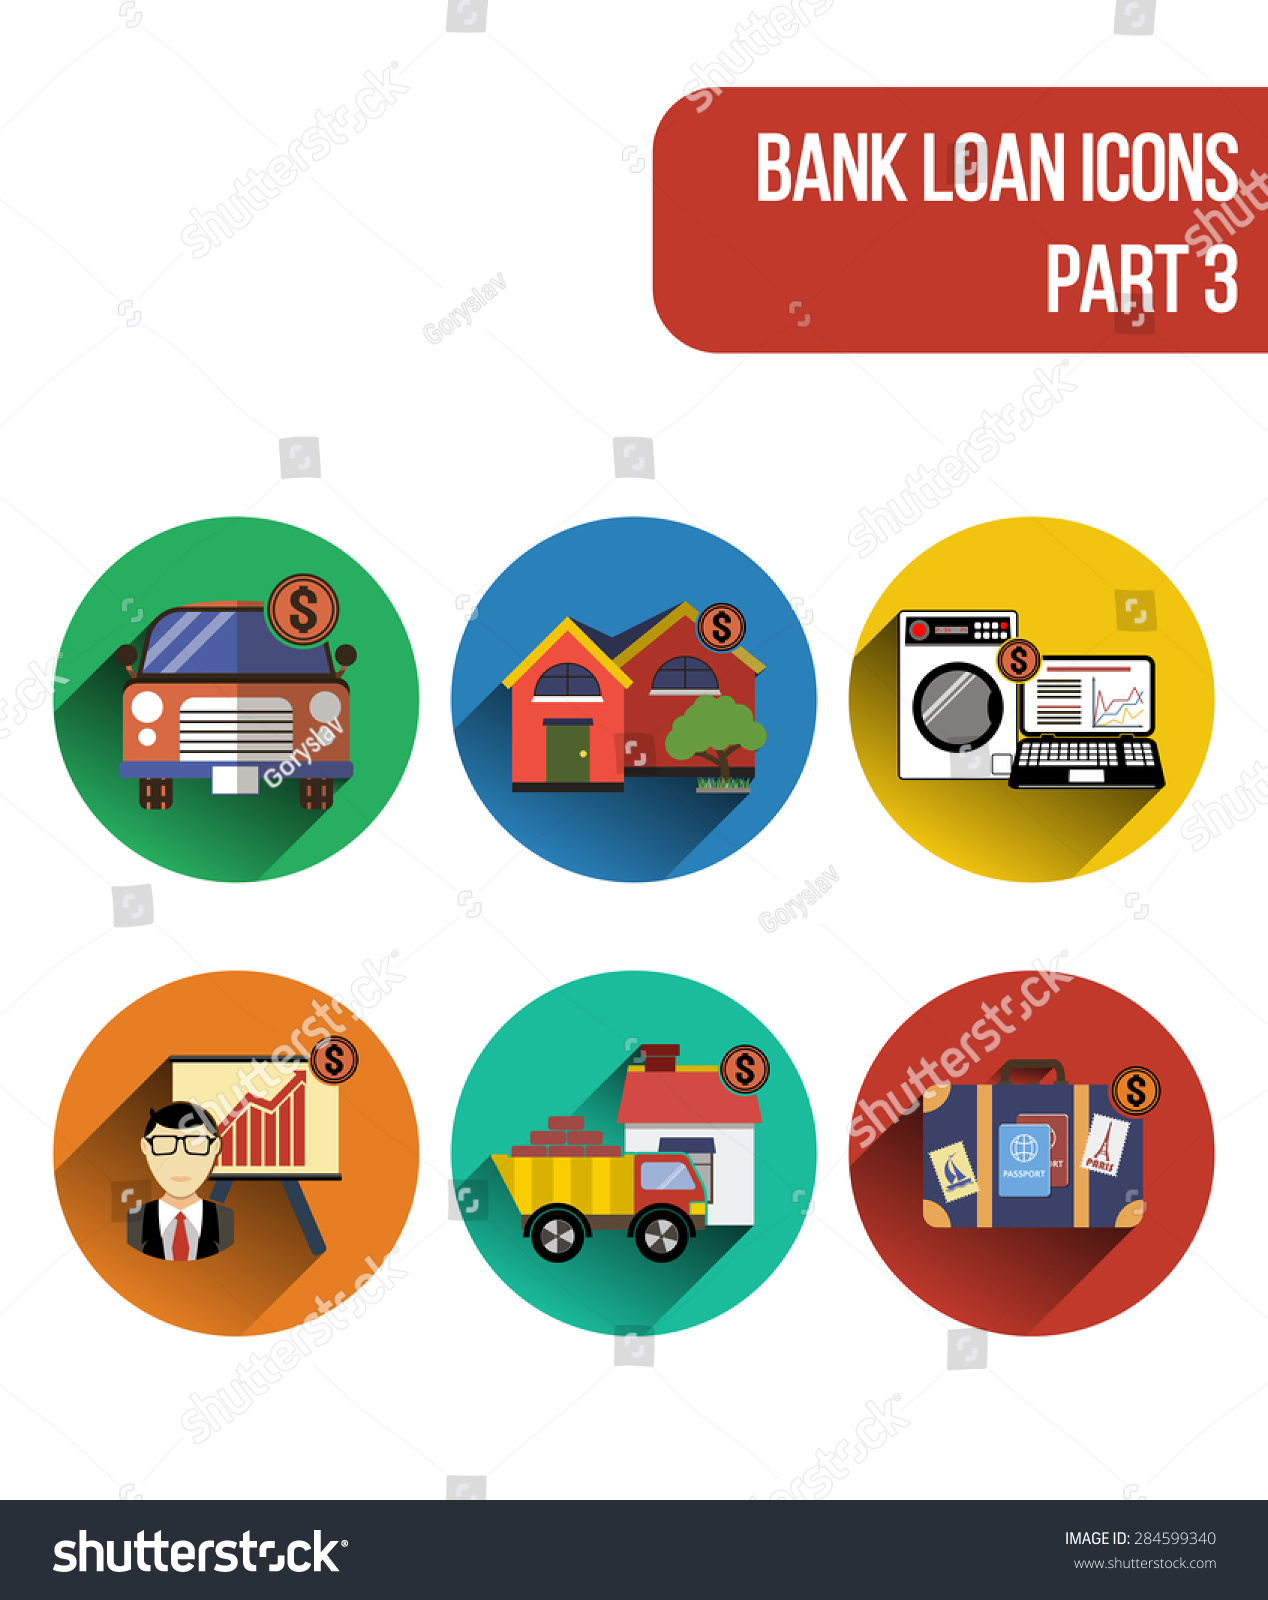 stock-vector-round-vector-flat-icons-for-various-types-of-bank-loan-services-including-mortgage-loan-auto-loan-284599340.jpg